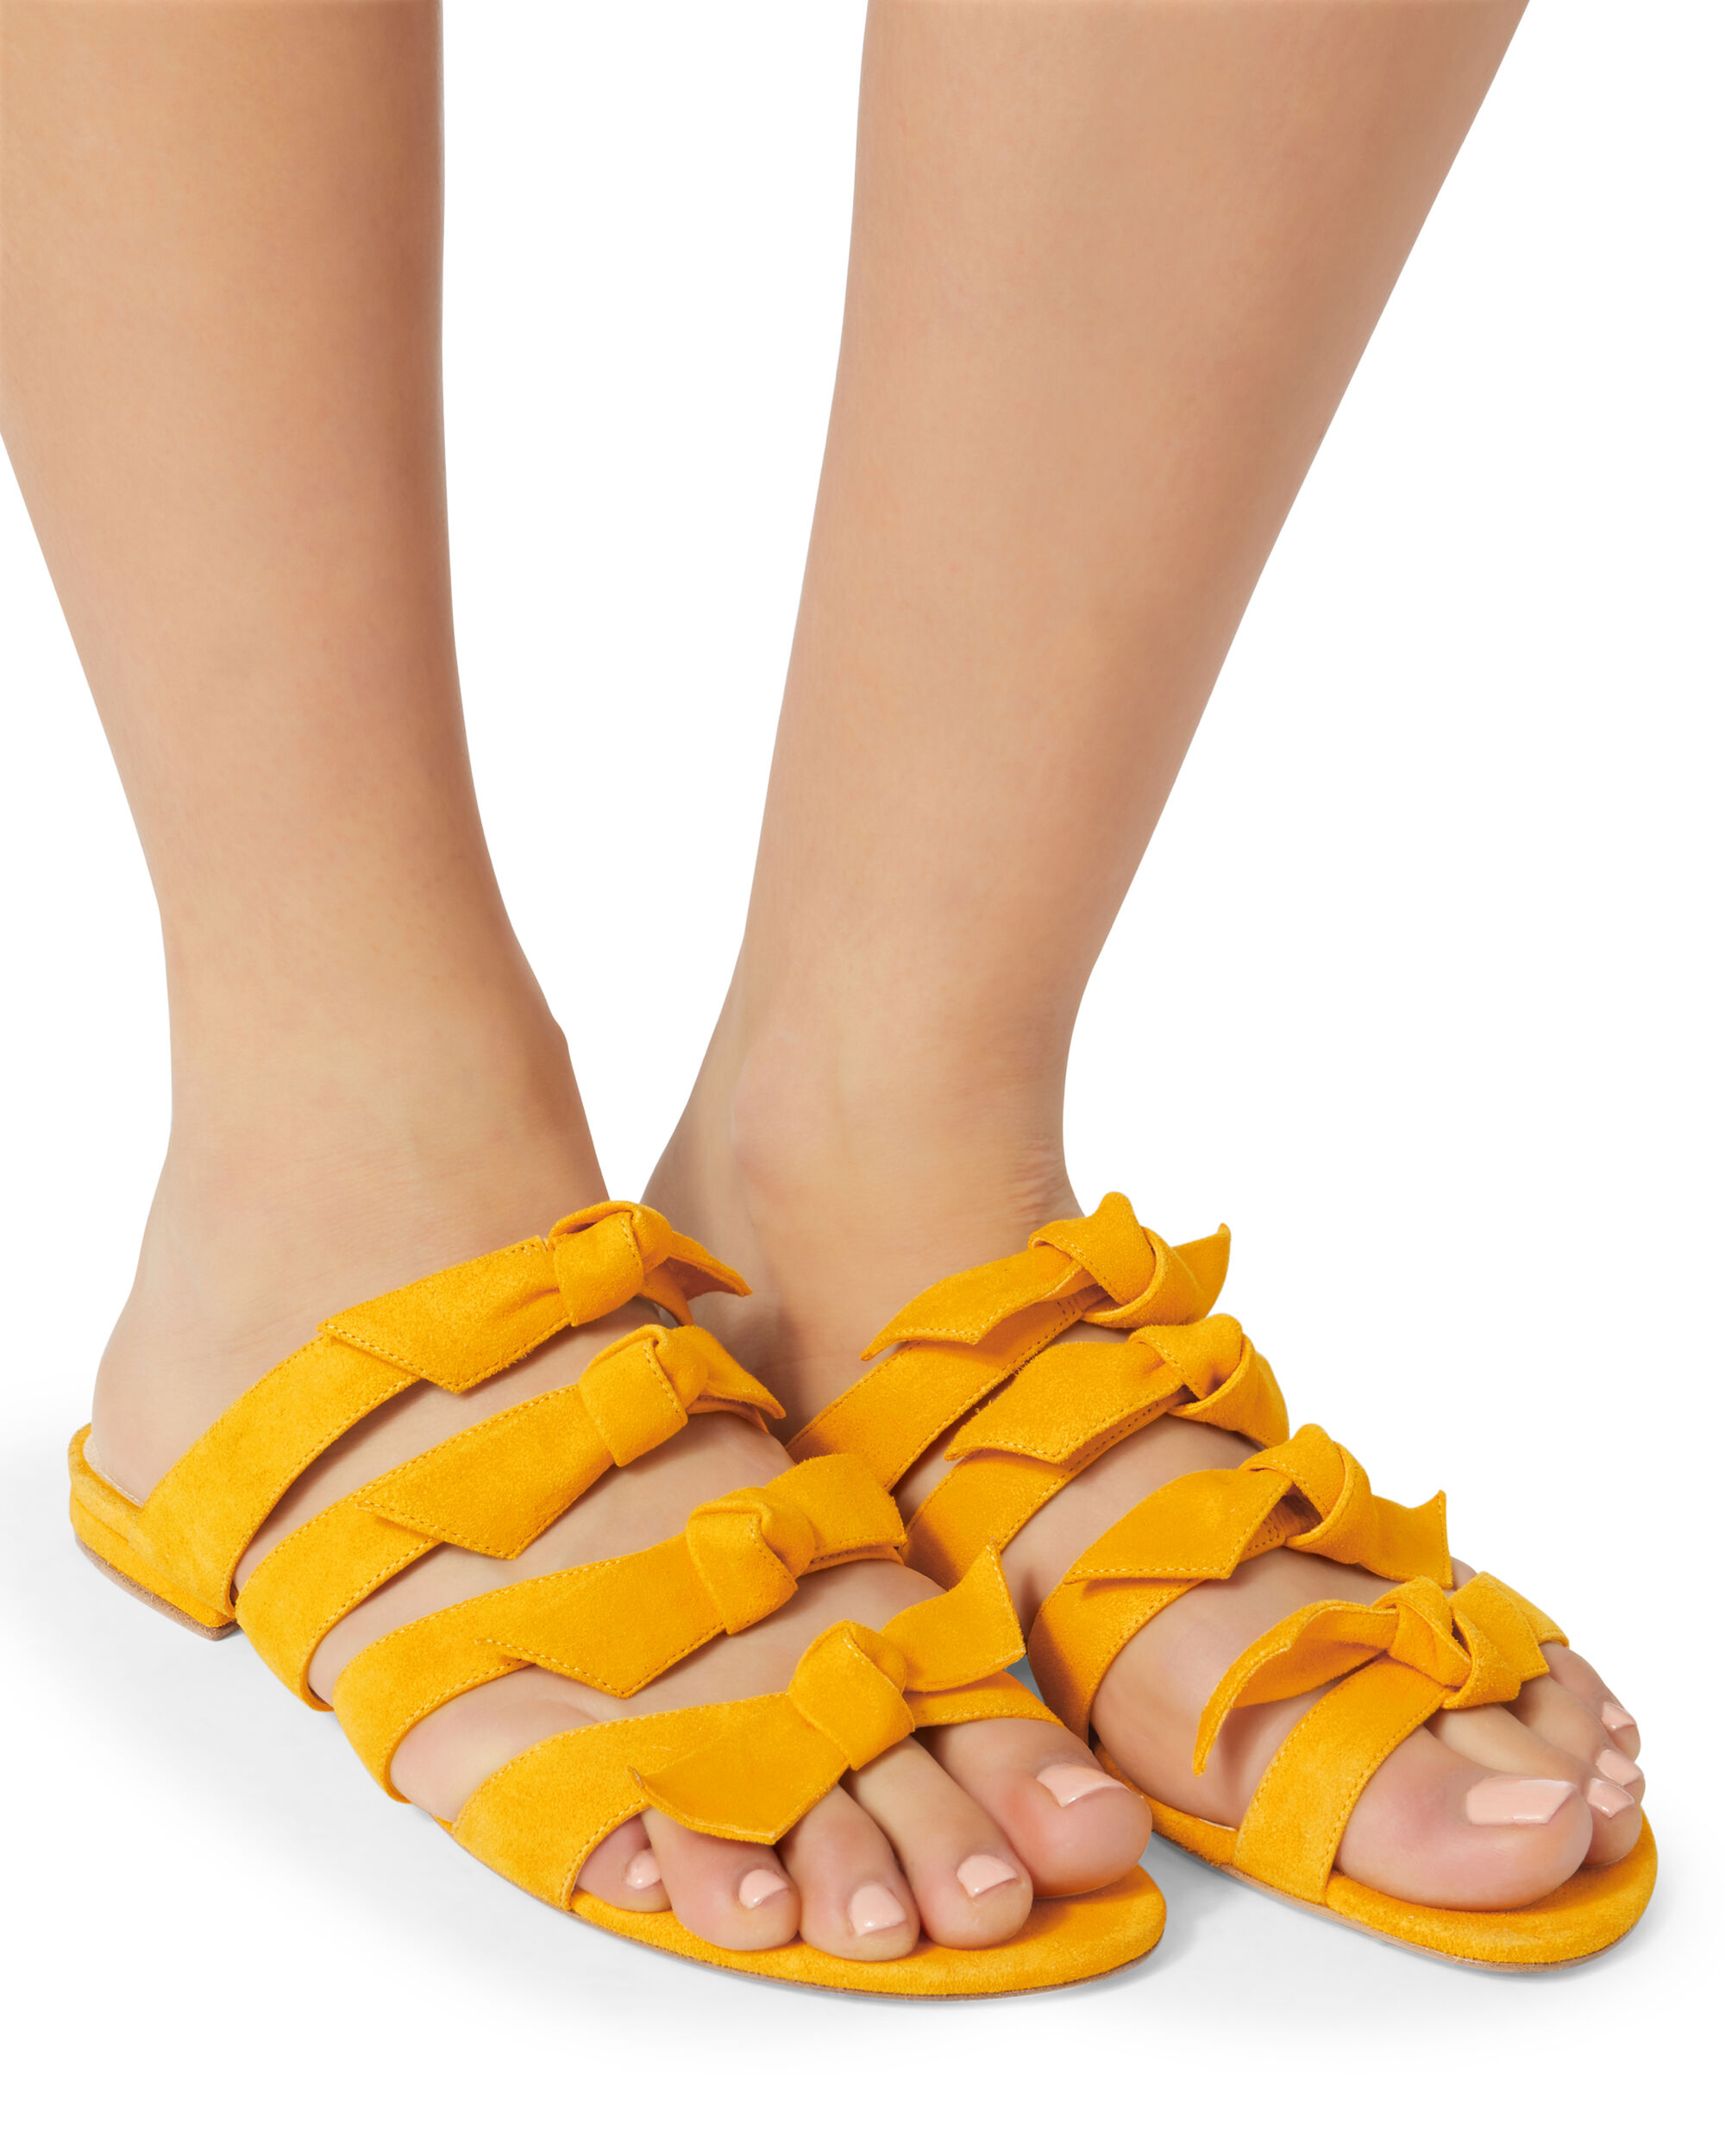 Knotted Yellow Suede Sandals, YELLOW, hi-res